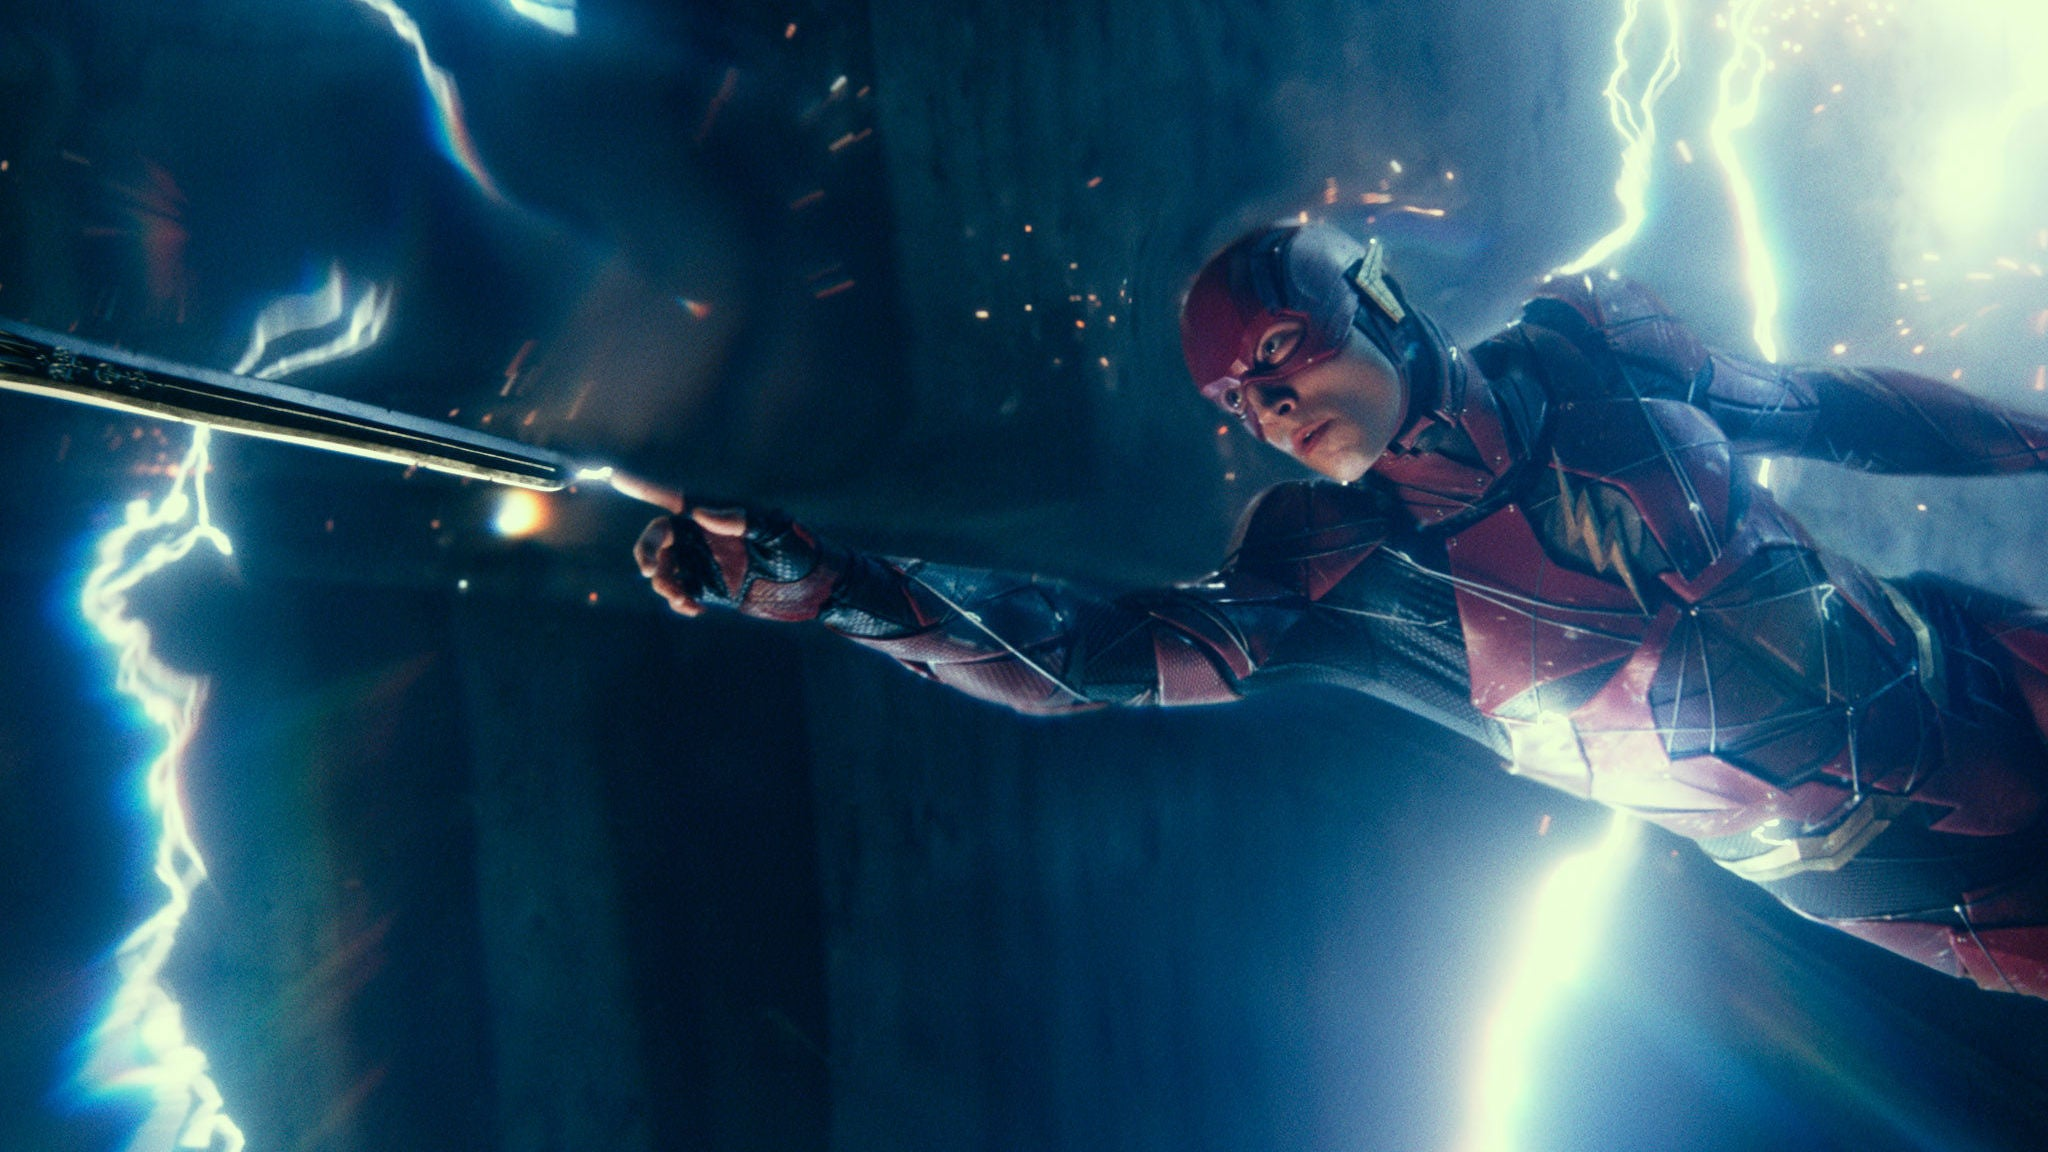 Sounds Like The Flashpoint Movie Might Include Batman As Well As Wonder Woman